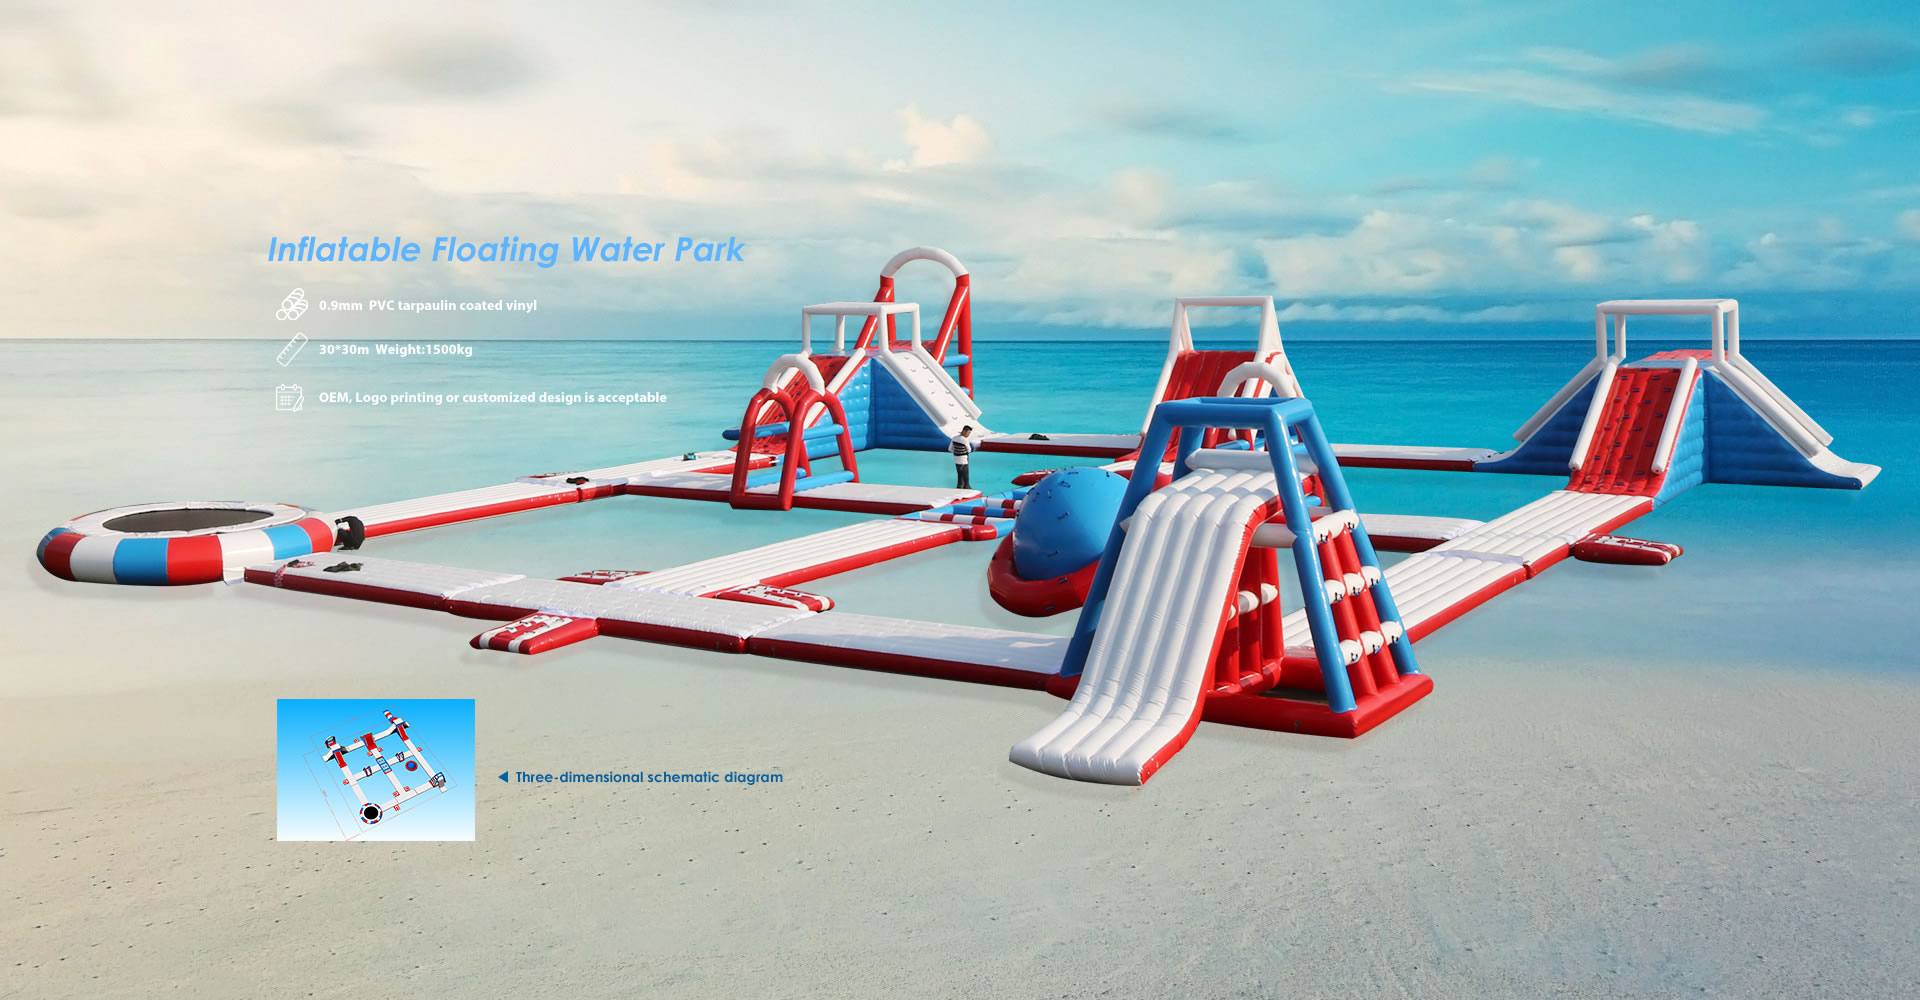 Professional Manufacturer Of Inflatable Tents And Stunt Airbag Schematic Fabric Diagram Floating Water Park Aqua For Sale